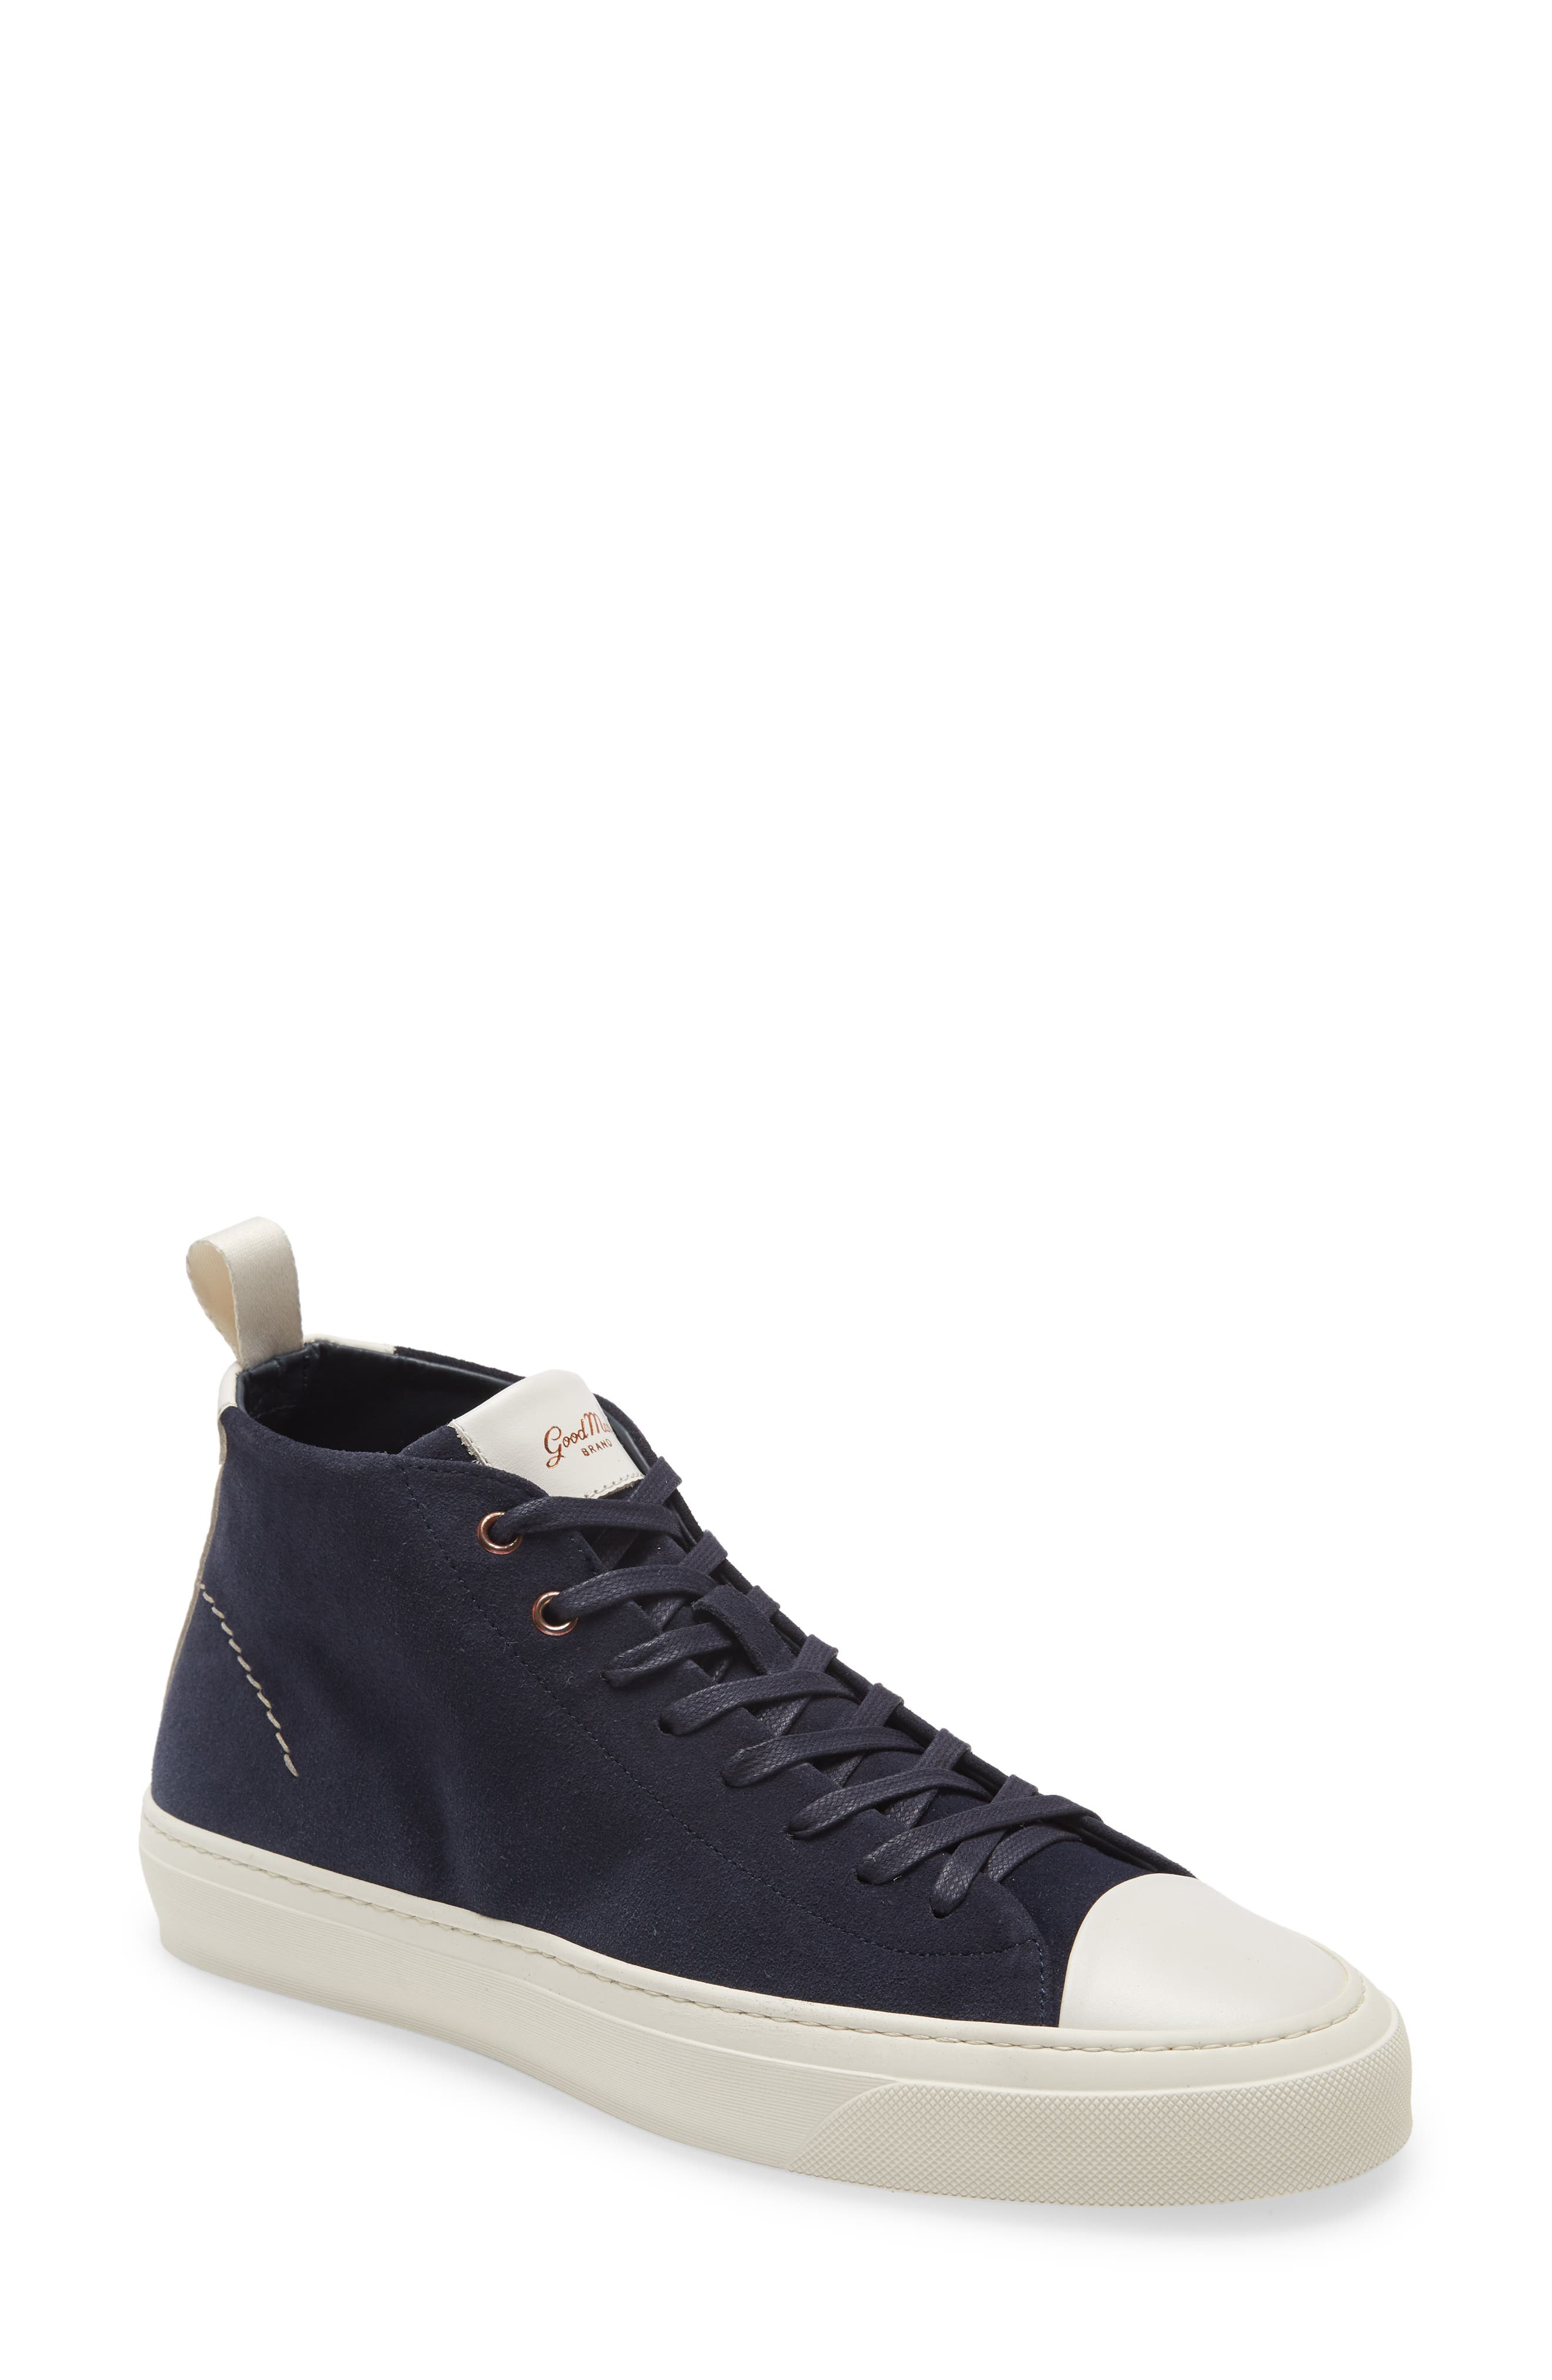 Contrast accents pop at the tongue and race up the back of an optic-white high-top sneaker finished with flashes of rose gold on the top grommets. Style Name: Good Man Brand Legacy High Top Sneaker (Men). Style Number: 5835121. Available in stores.